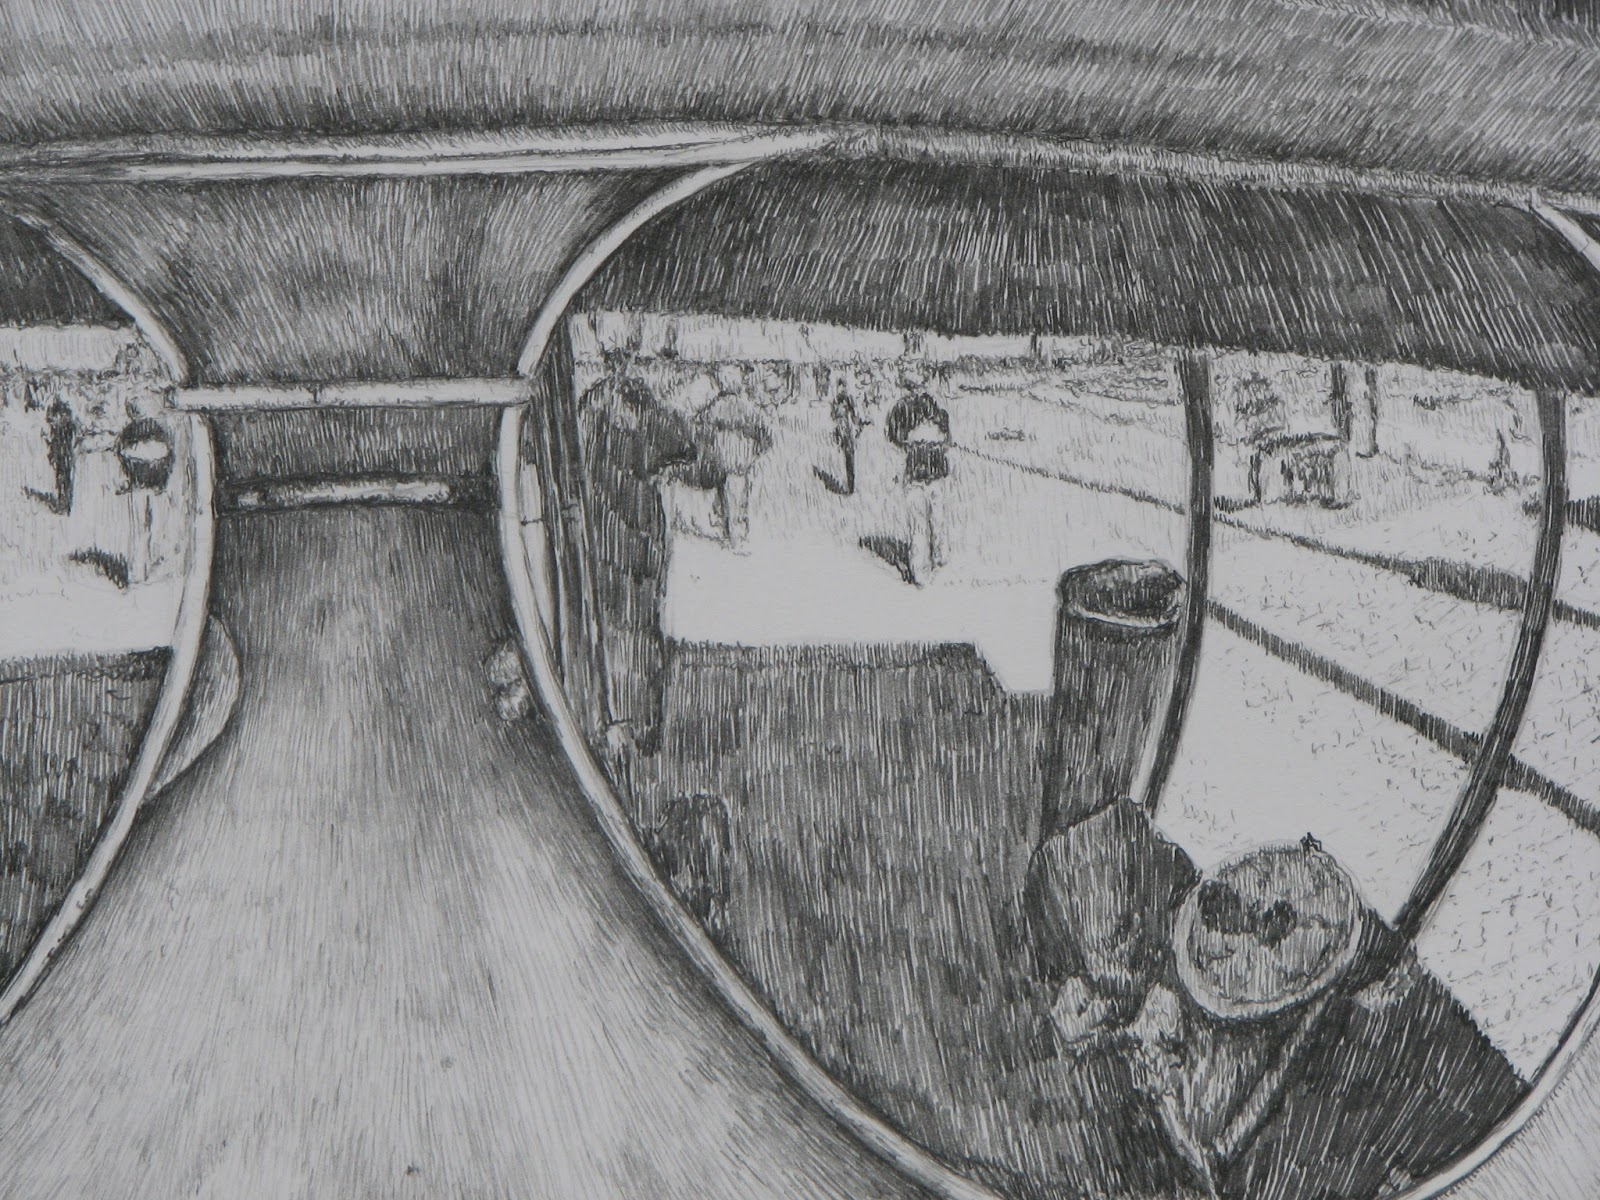 Drawn spectacles reflection Drawing sunglasses reflection